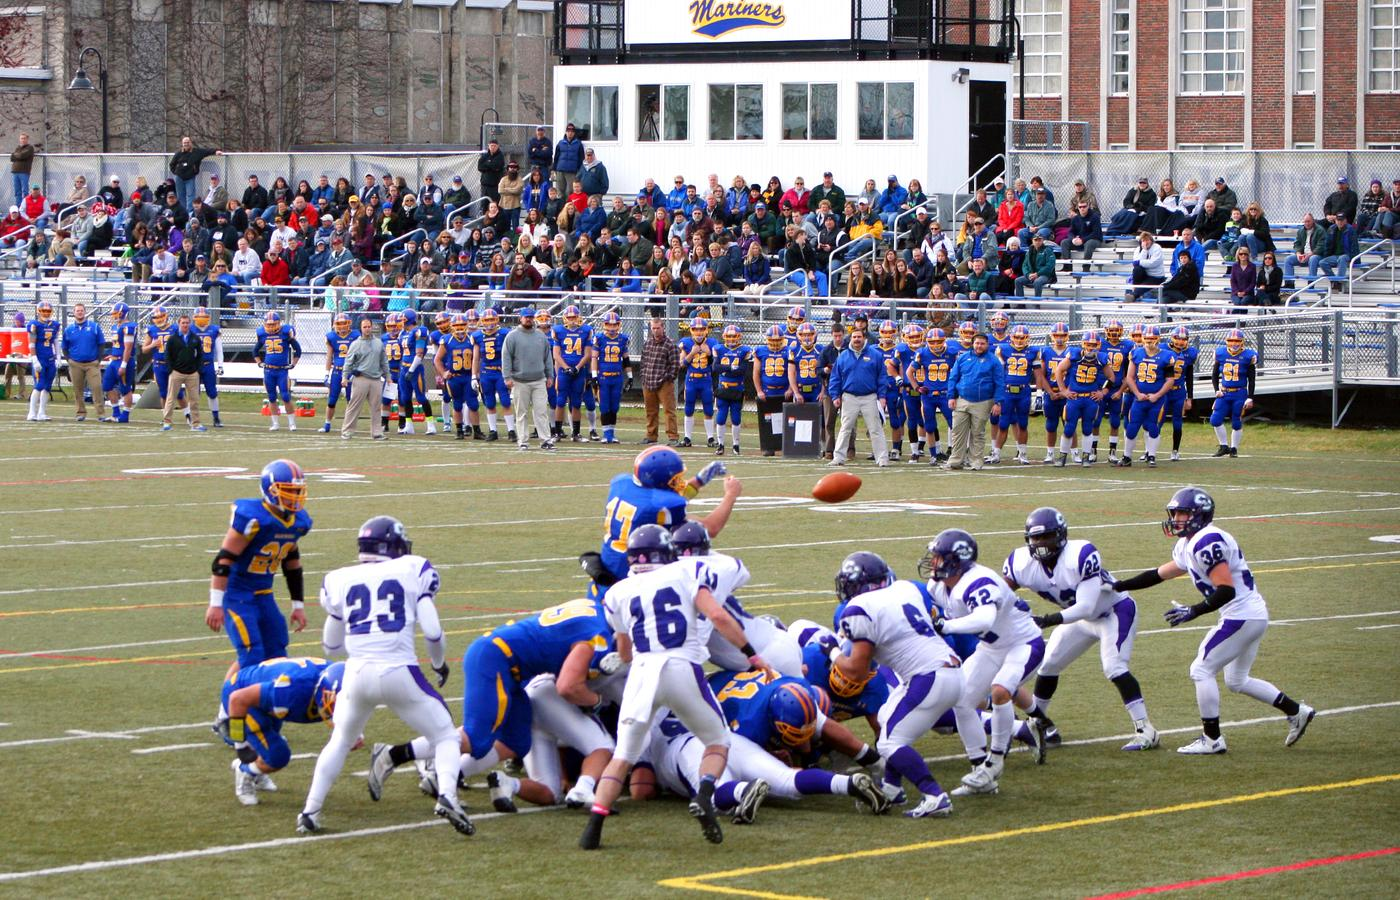 Mariners start strong, but fall to Curry | Castine Patriot ...